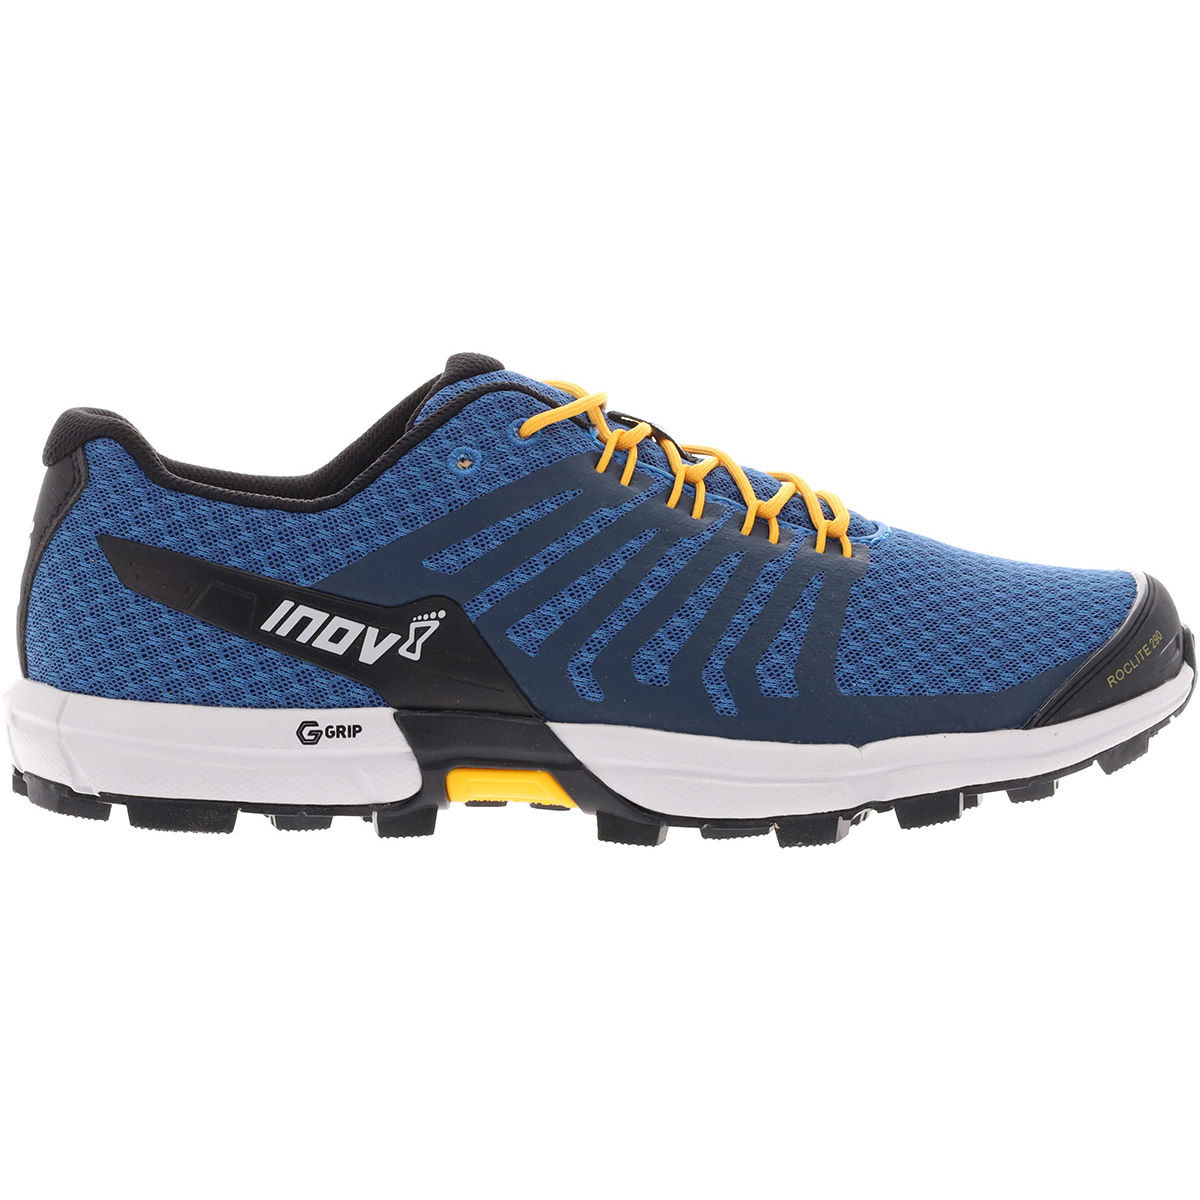 Inov-8 Roclite G 290 Running Shoes - Uk 8.5 Blue/yellow  Trail Shoes